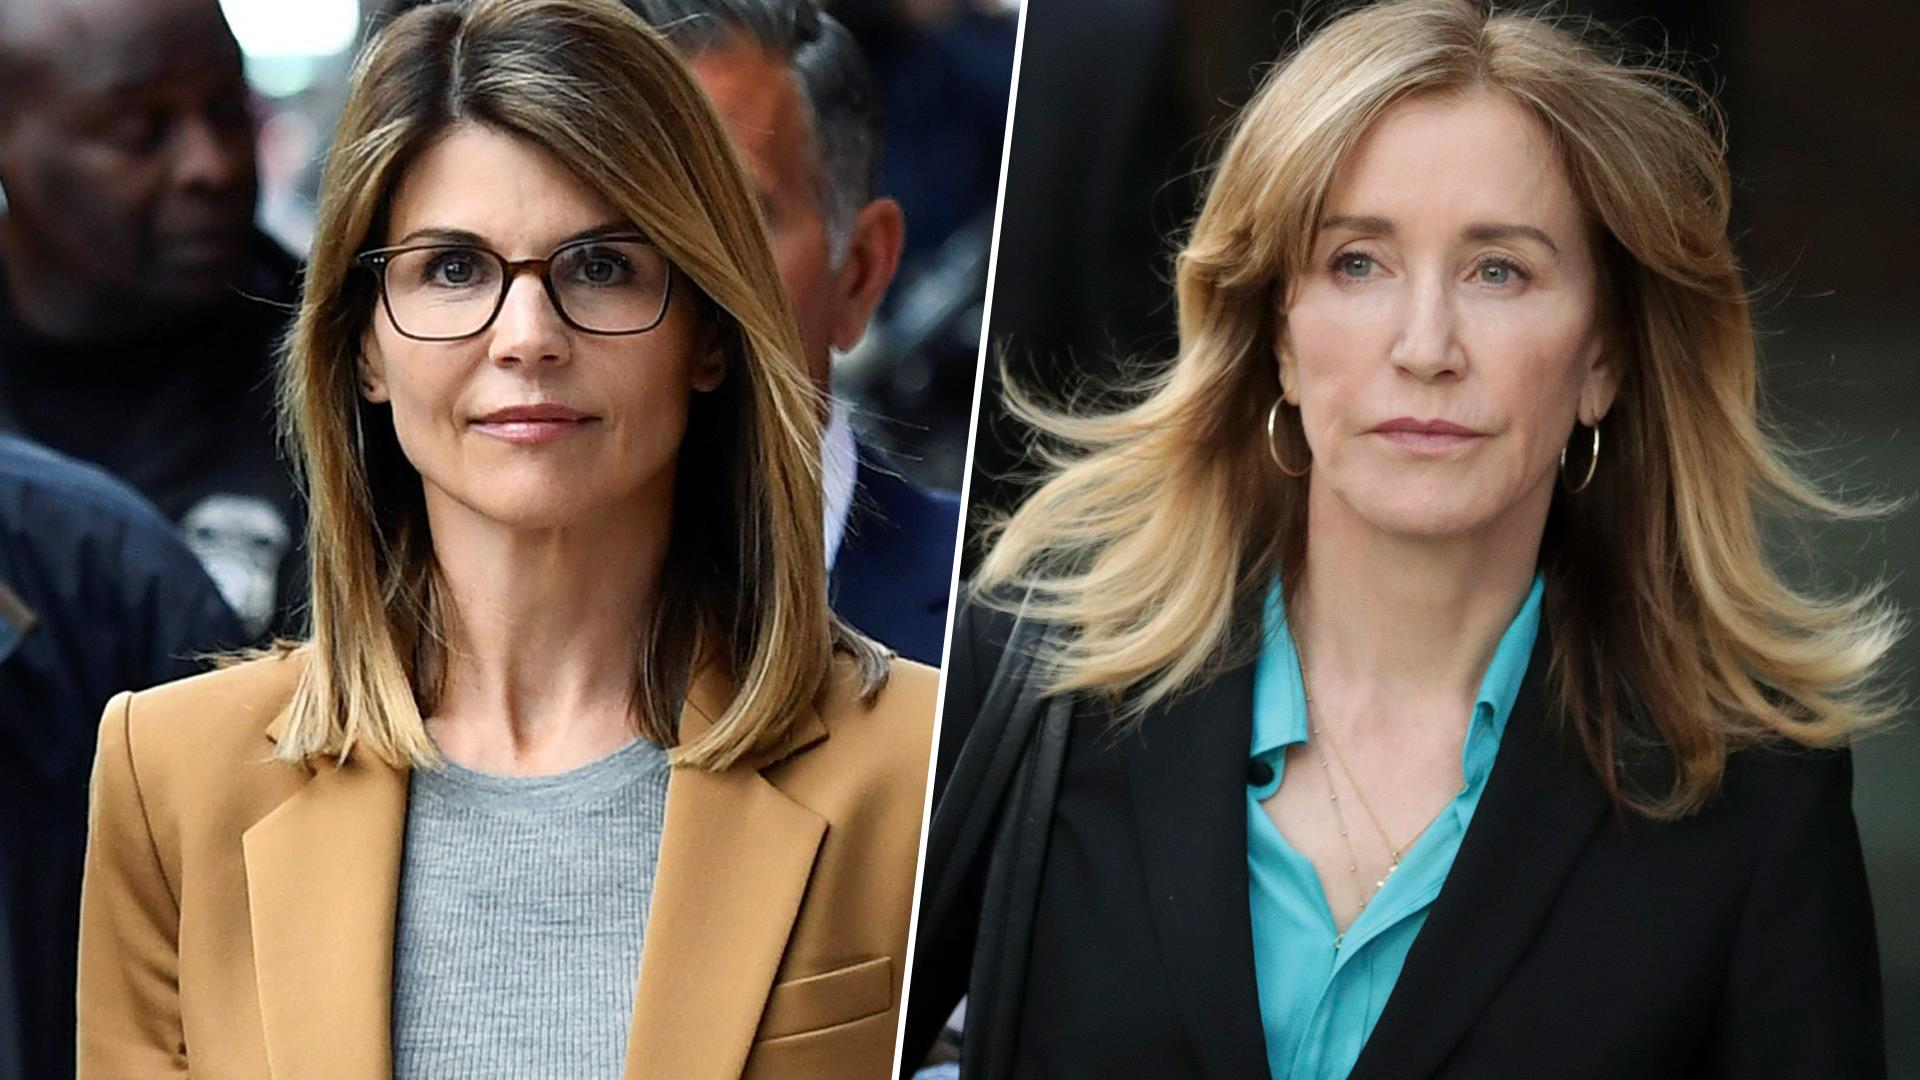 Actresses leave court after facing judge in college admissions scam